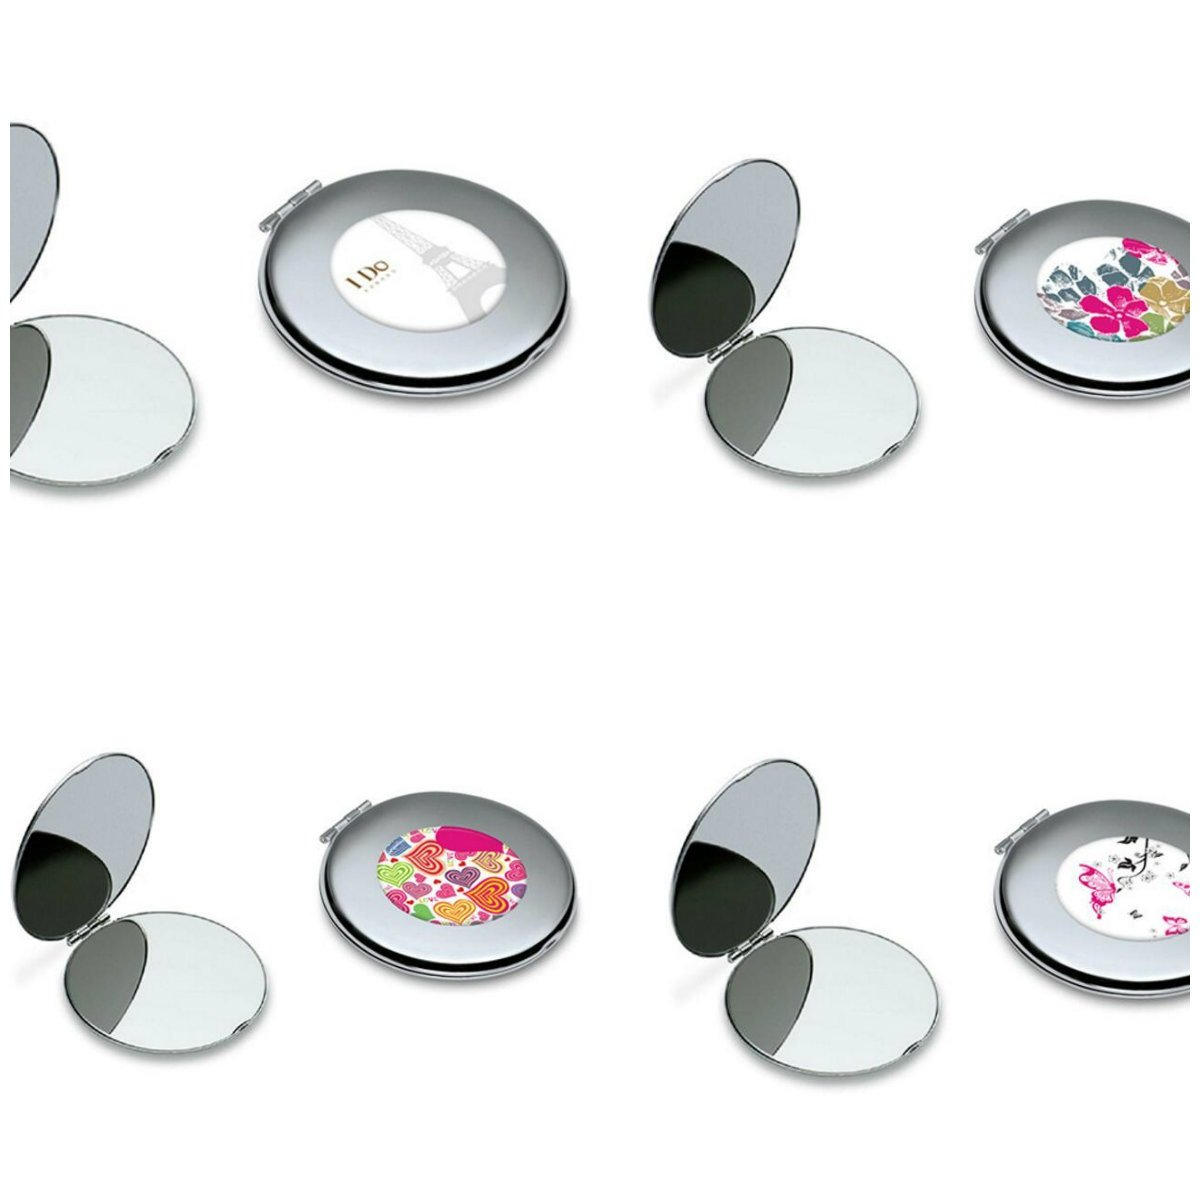 Yingealy Childrens Mirror Mini Butterfly Pattern Round Metal Small Glass Mirrors Circles for Crafts Decoration Cosmetic Accessory by Yingealy (Image #2)